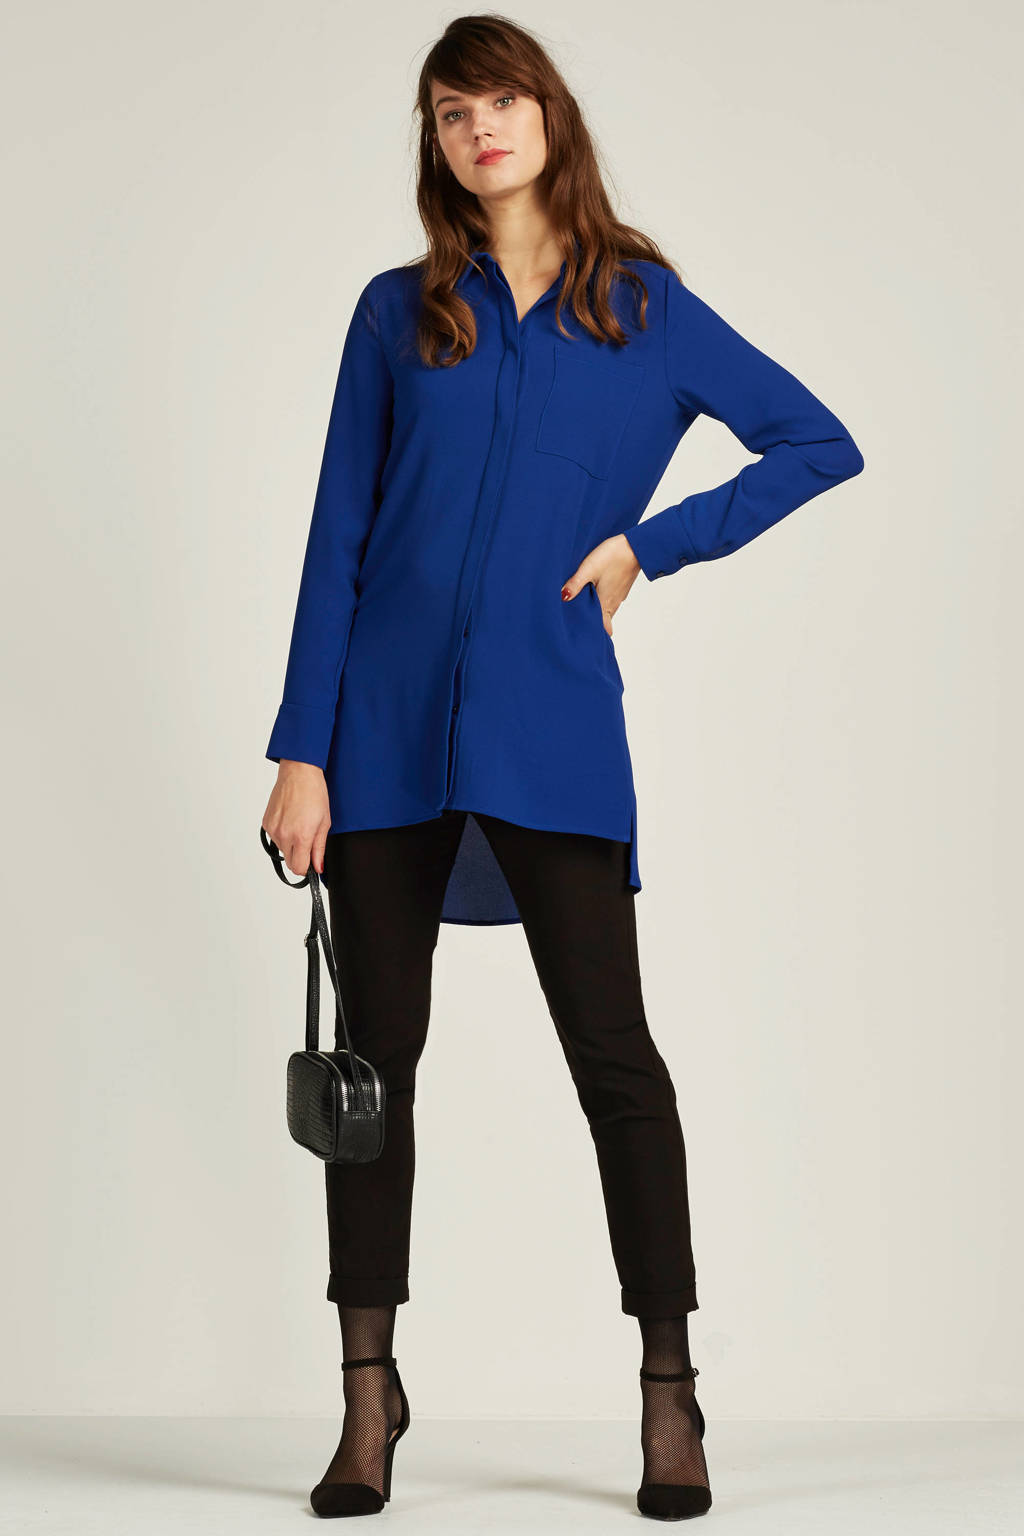 whkmp's own gerecycled polyester blouse, Kobaltblauw